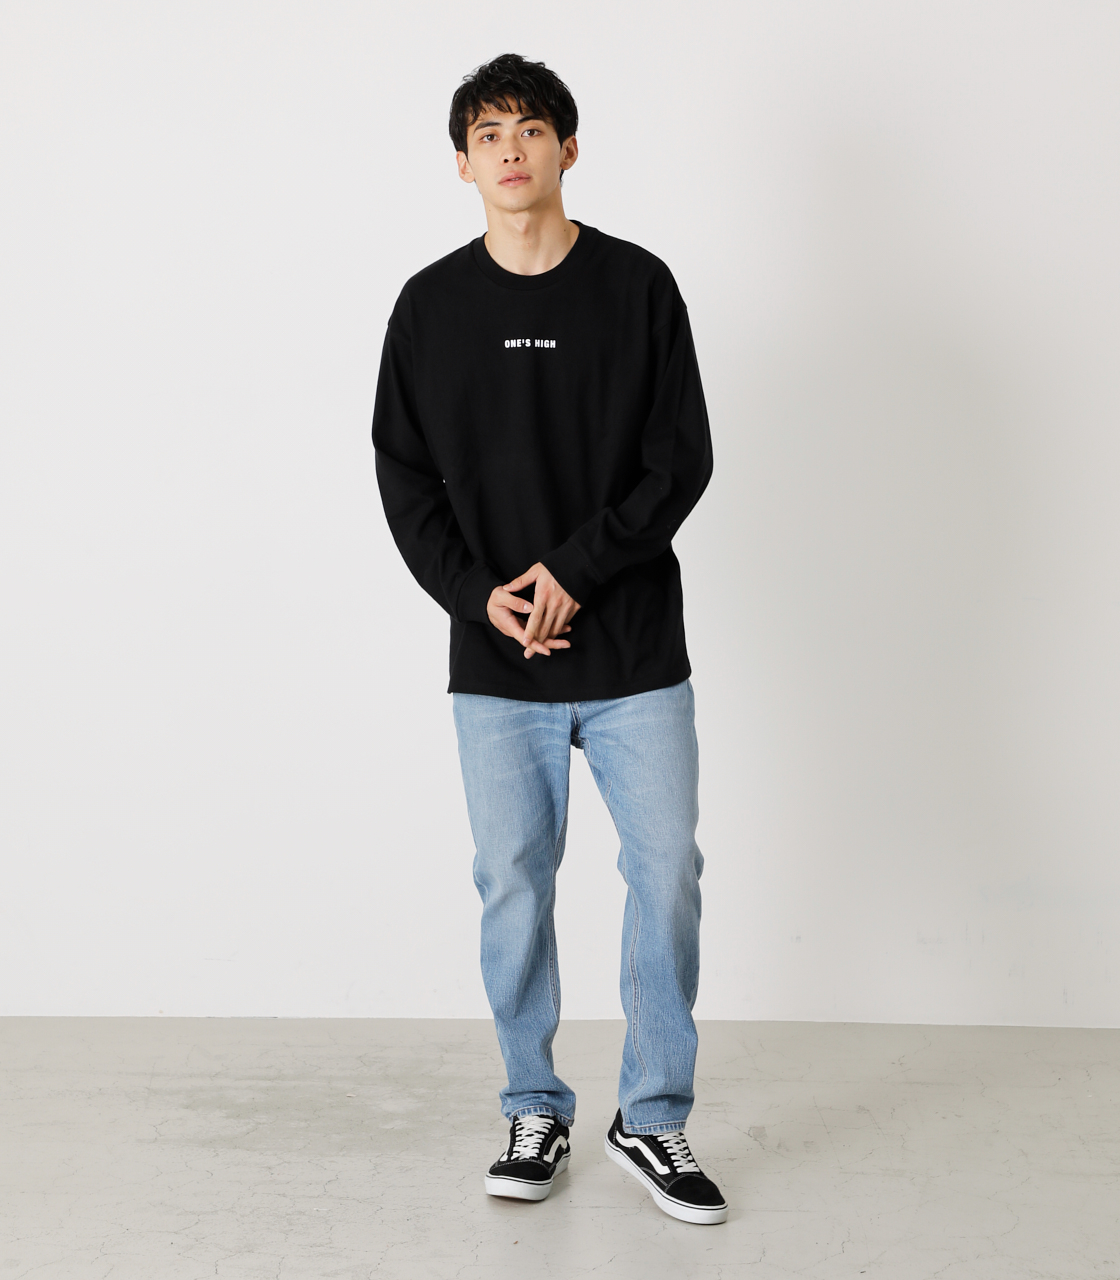 ONE'S HIGH LONG TEE/ワンズハイロングTシャツ 詳細画像 BLK 4